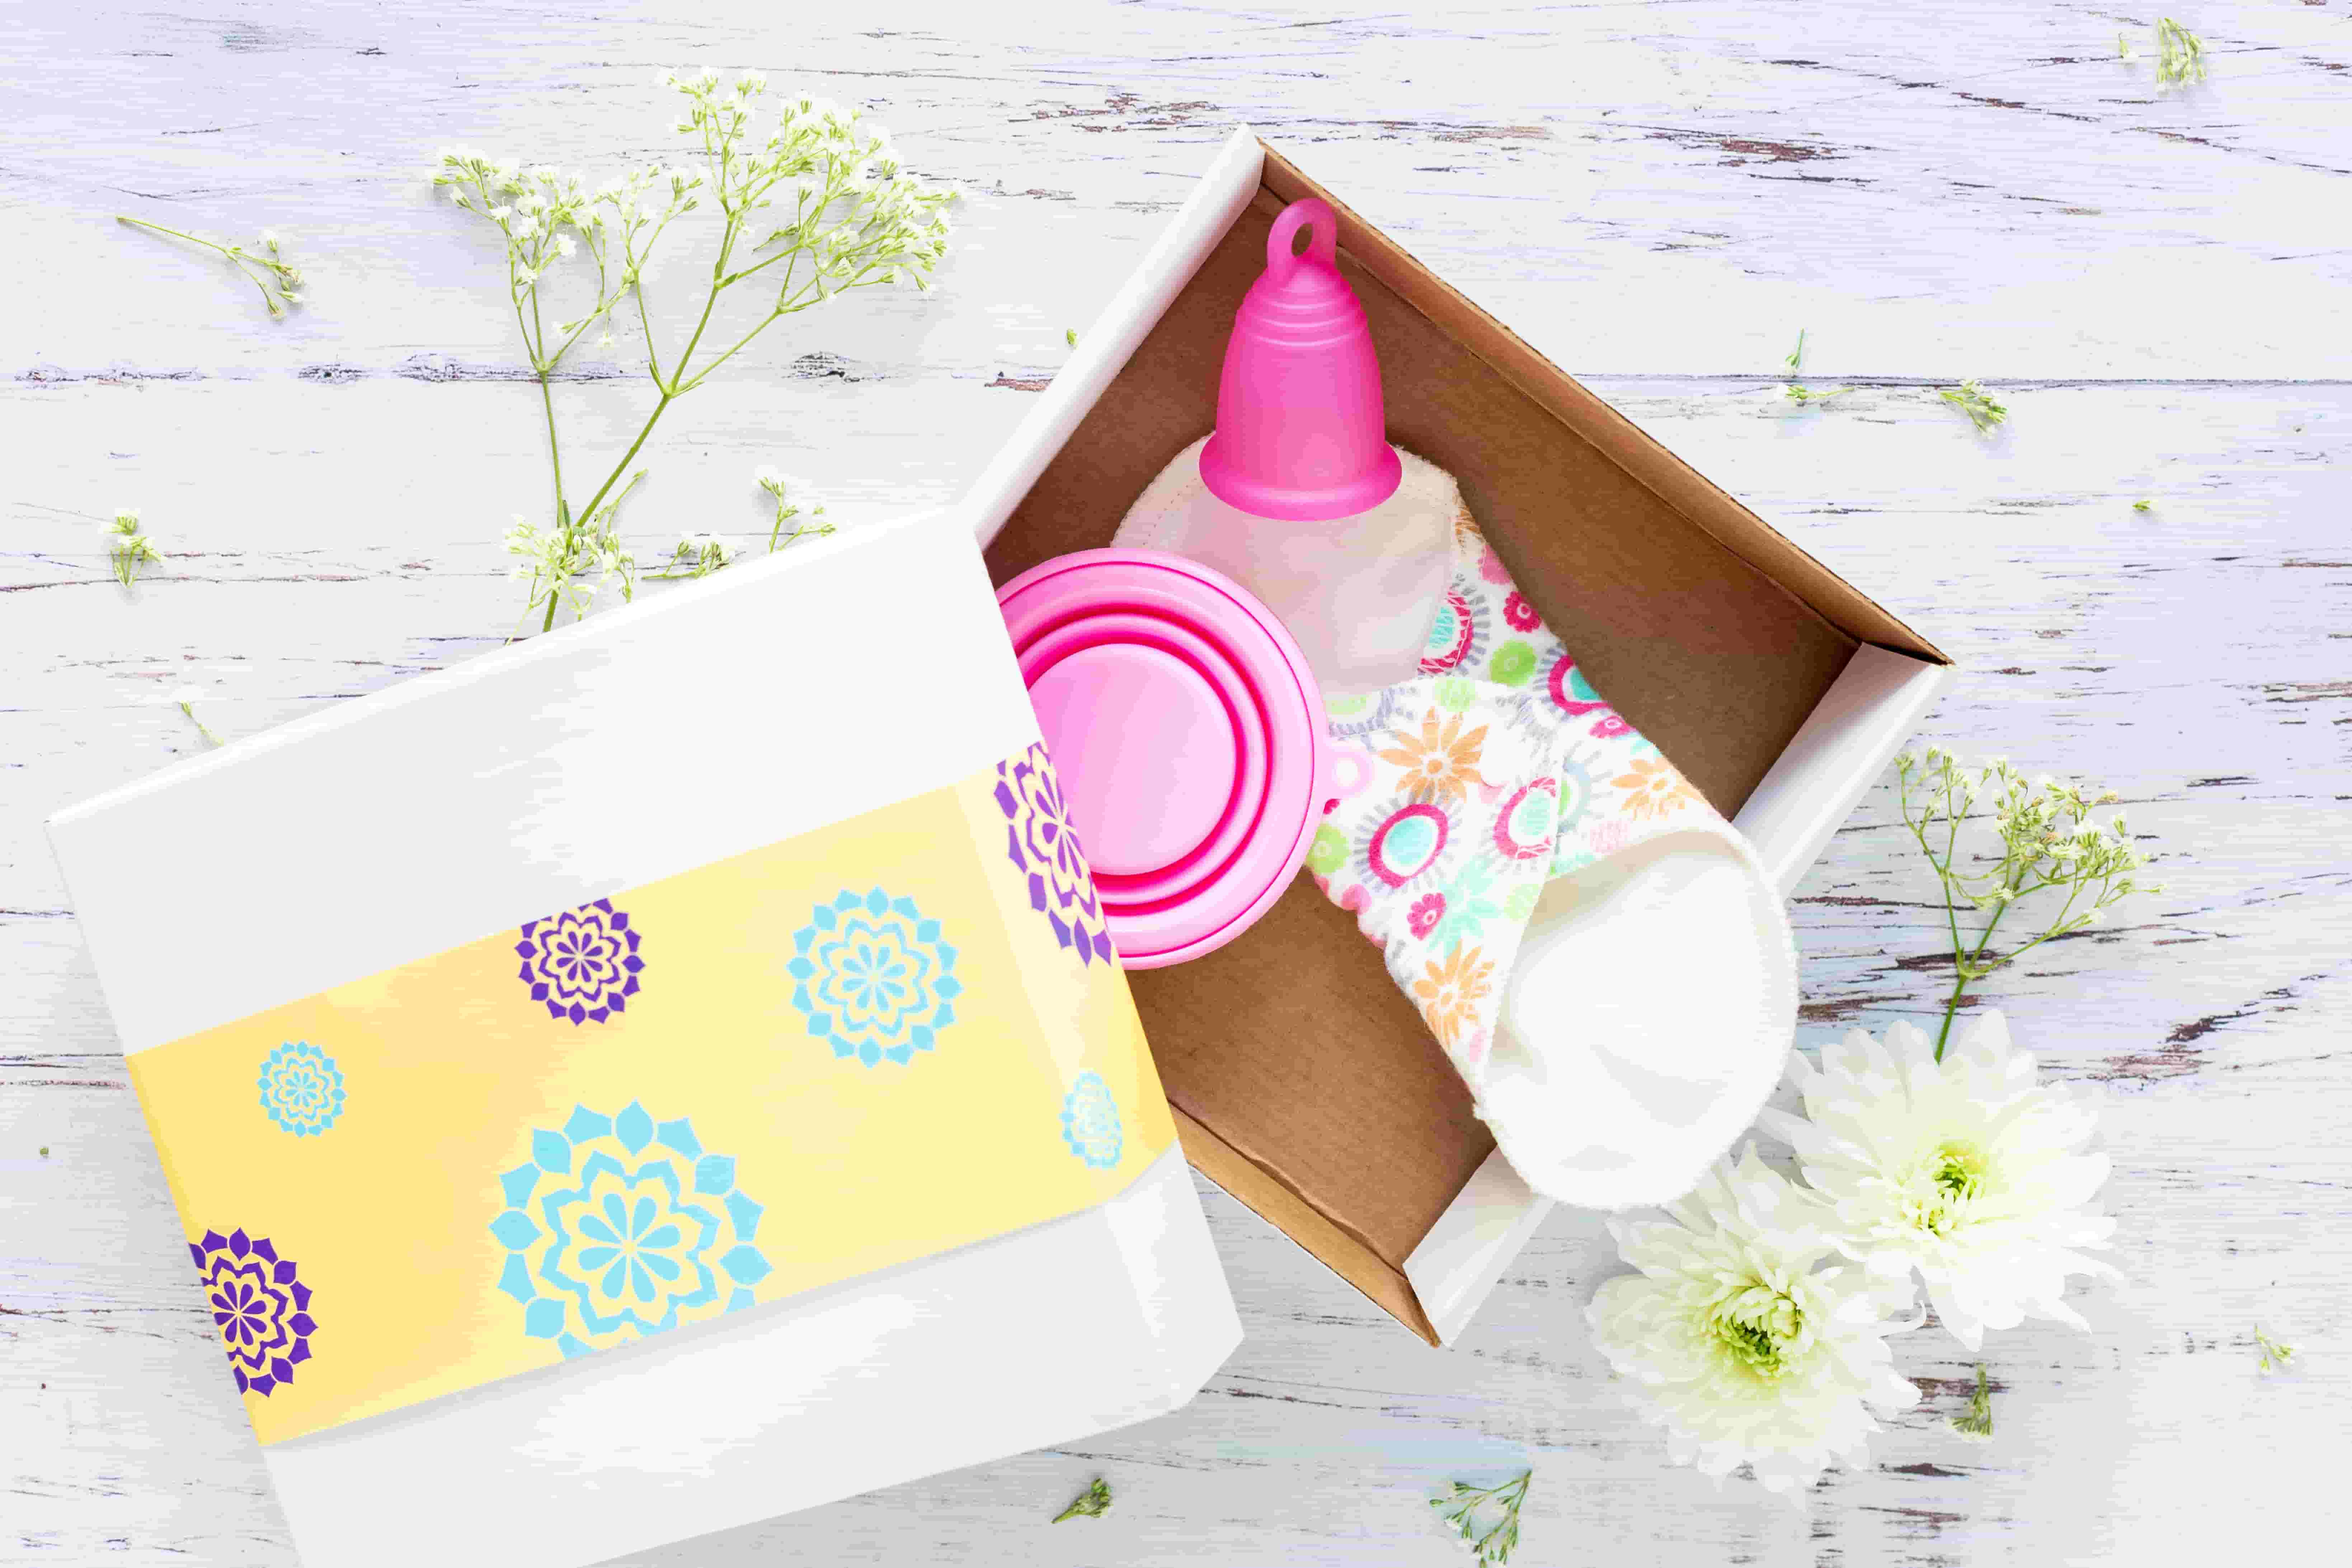 A box sits open with a reusable menstrual cup and pad within it